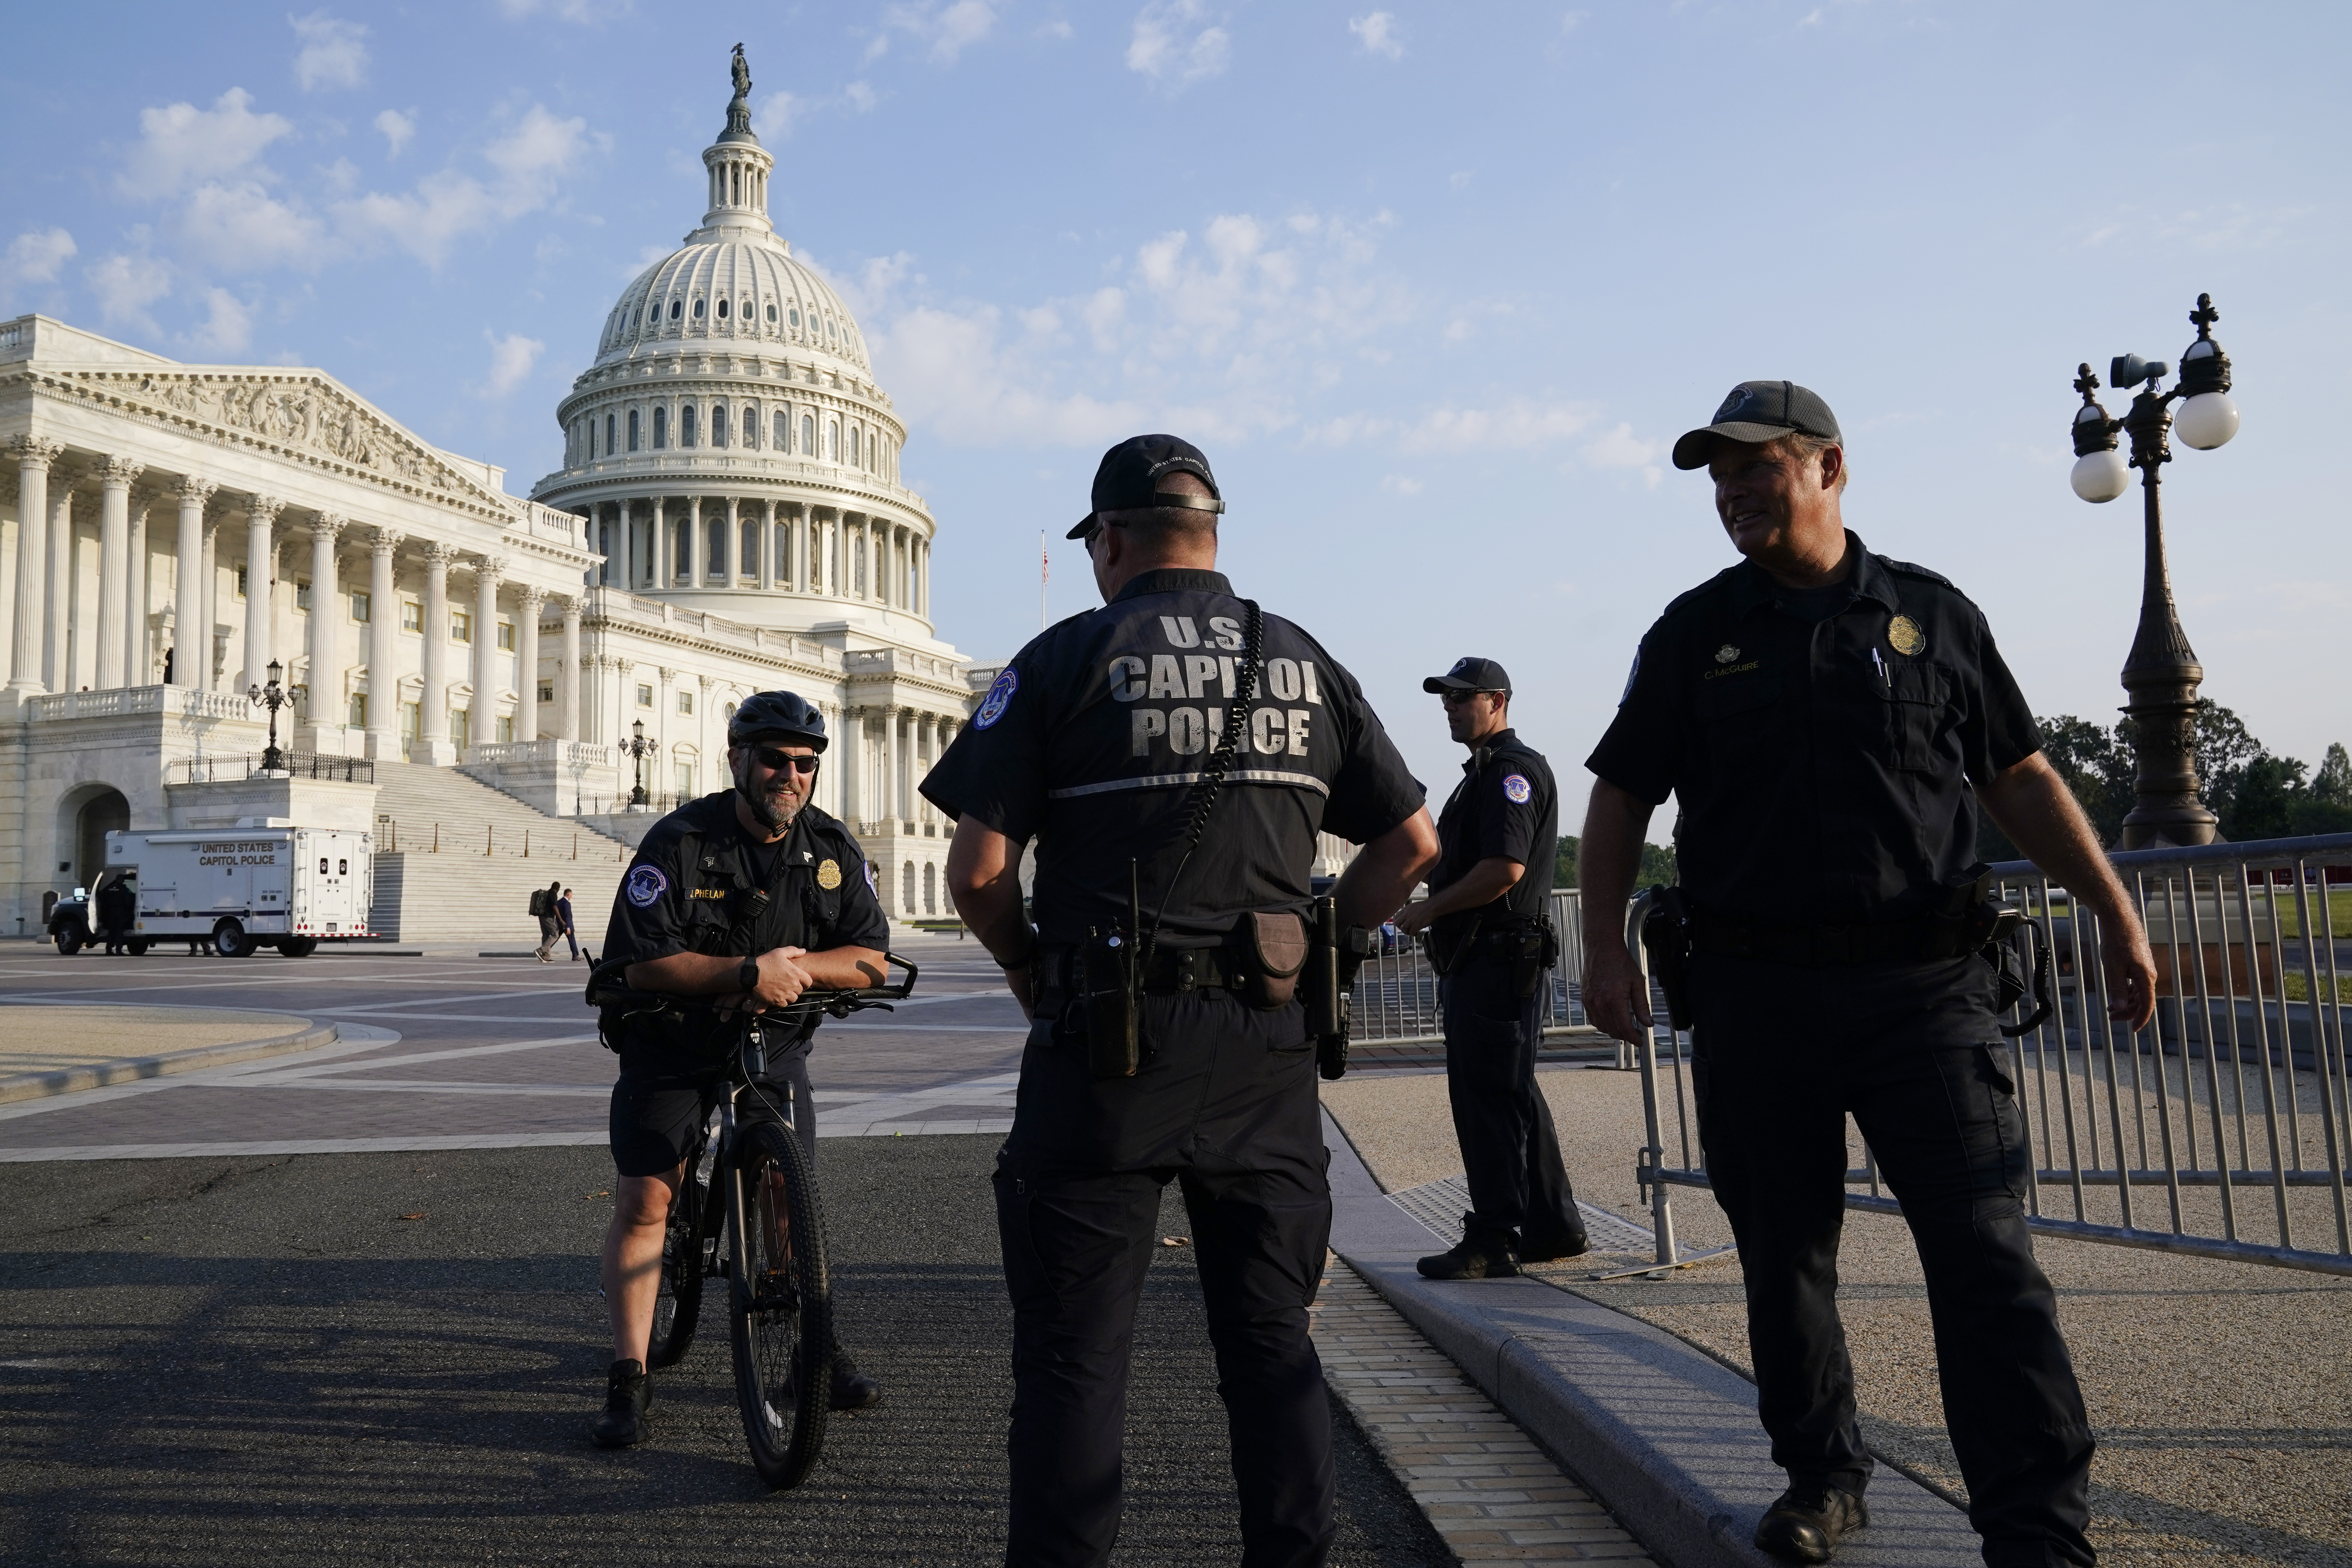 The U.S. Capitol is seen in Washington, early Tuesday, July 27, 2021, as U.S. Capitol Police keep eyes on the perimeter.